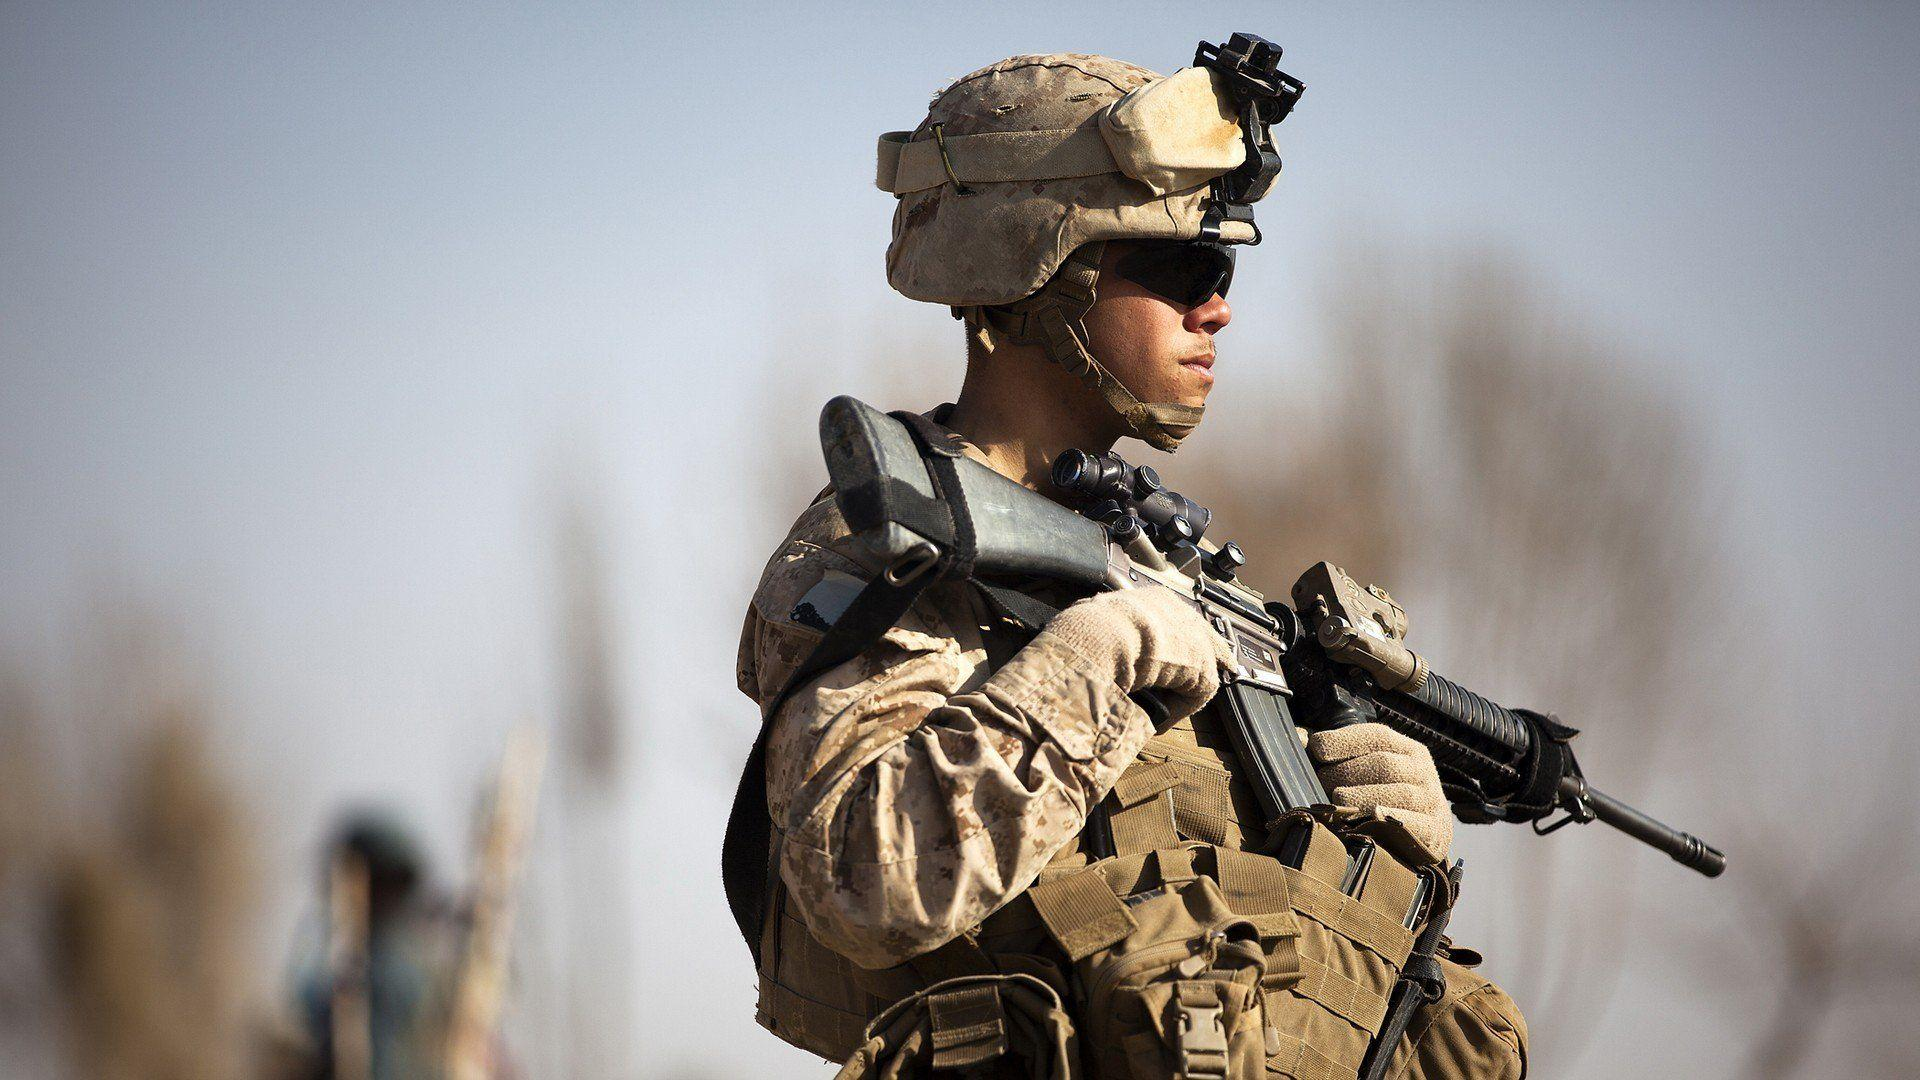 terminal leave paperwork usmc Mco 10503j 3 (12) chapter 4 paragraphs 2, 7, and 8 adds marine online (mol) procedures as primary means to request/approve leave, liberty, and ptad.